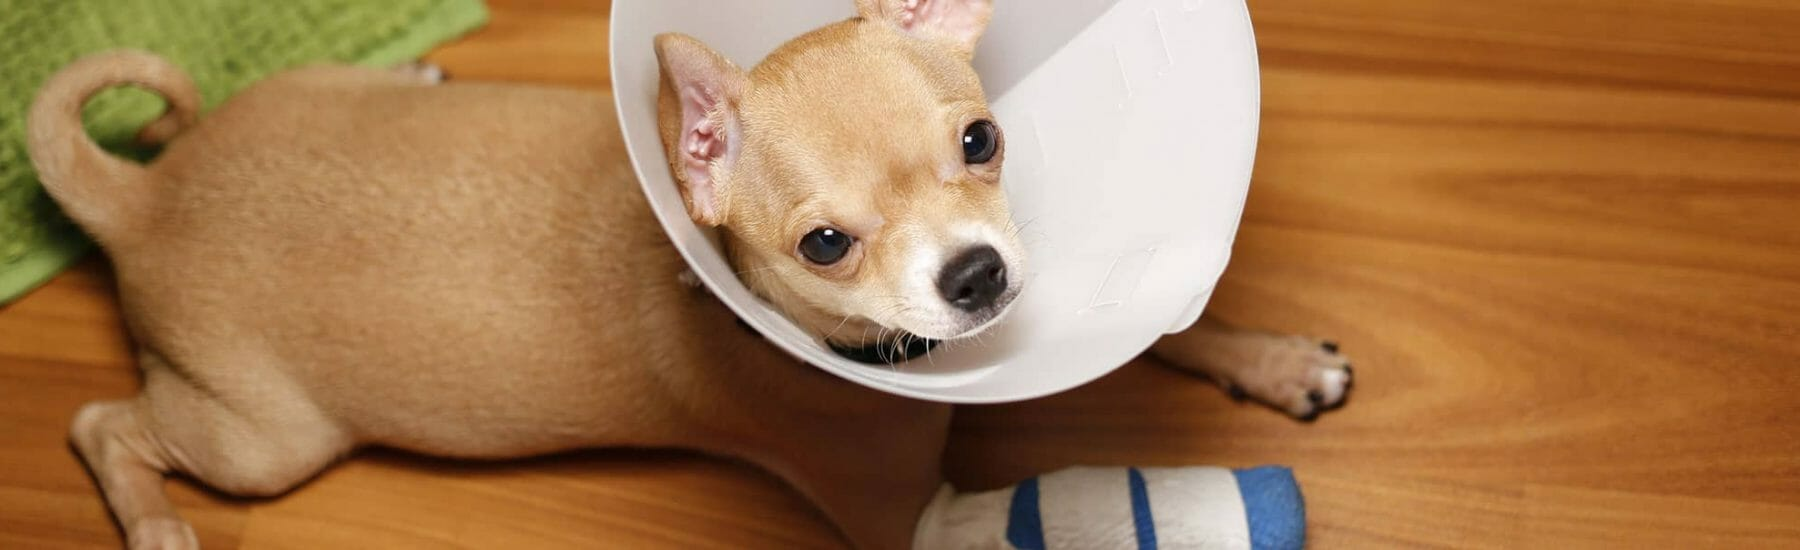 Dog with a bandaged arm wearing a cone and lying down